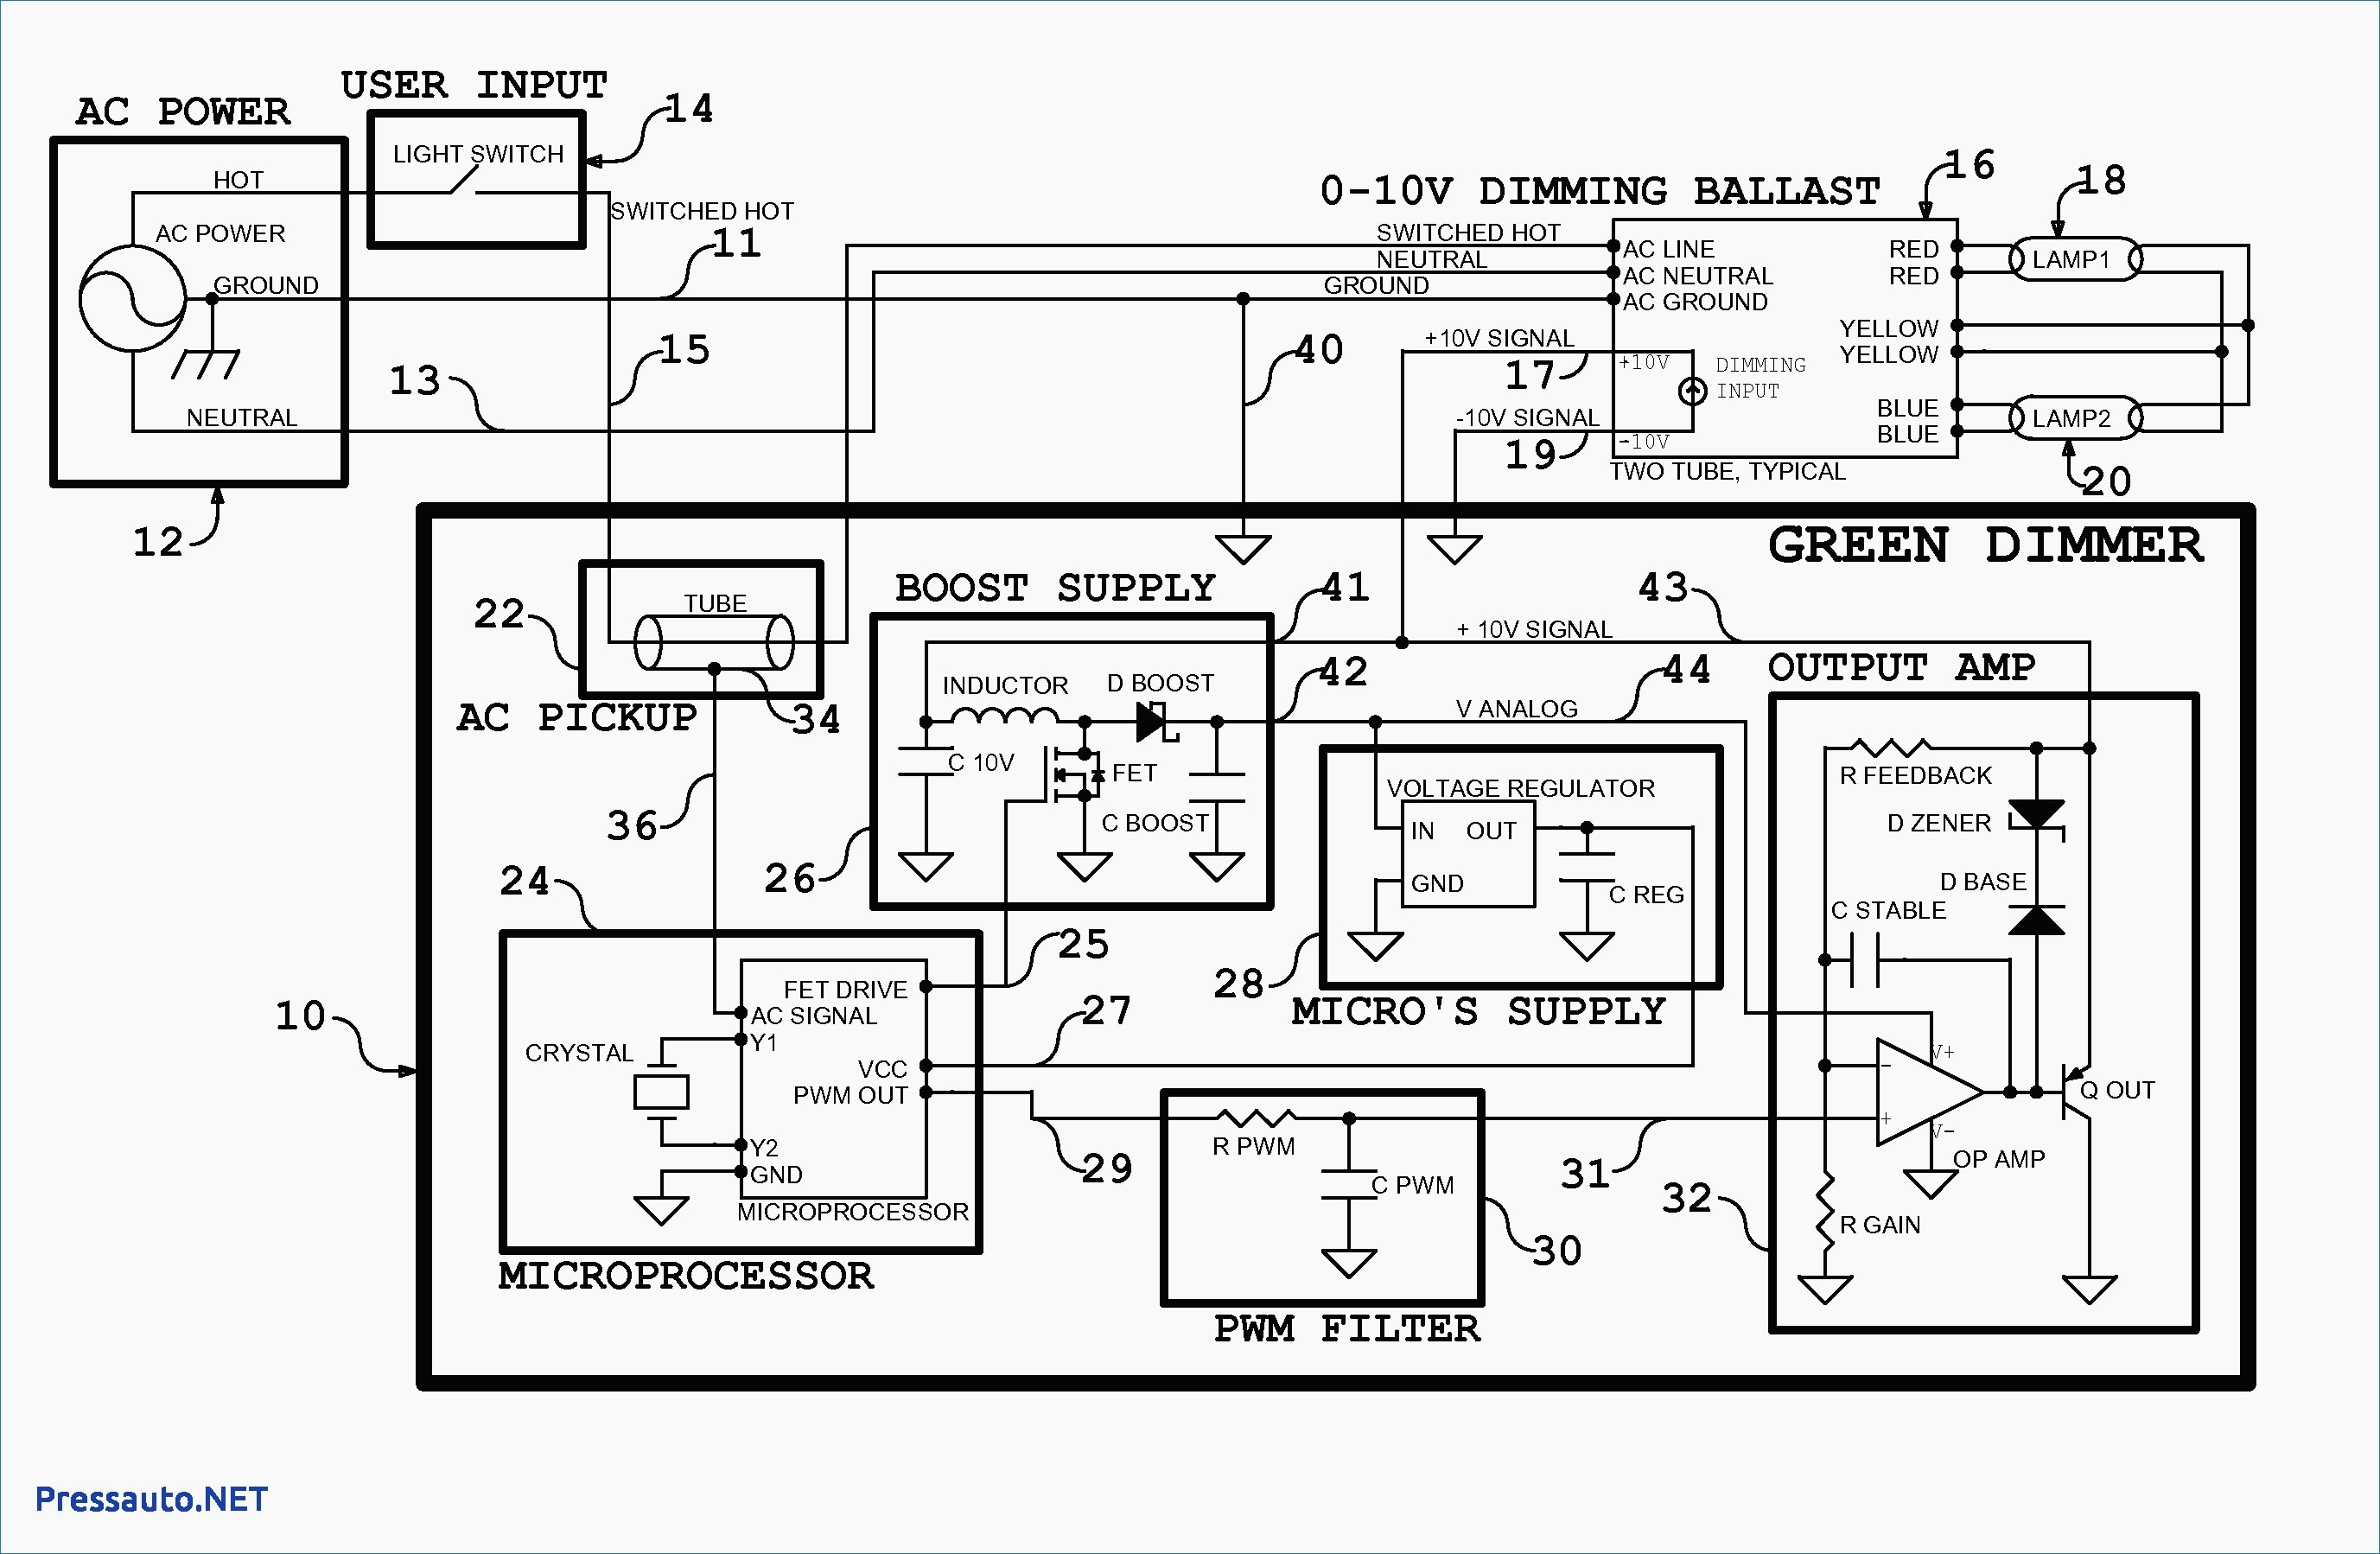 OL_1792] Leviton 0 10V Led Dimmer Wiring Diagram Download DiagramUmize Hapolo Sarc Amenti Phot Oliti Pap Mohammedshrine Librar Wiring 101